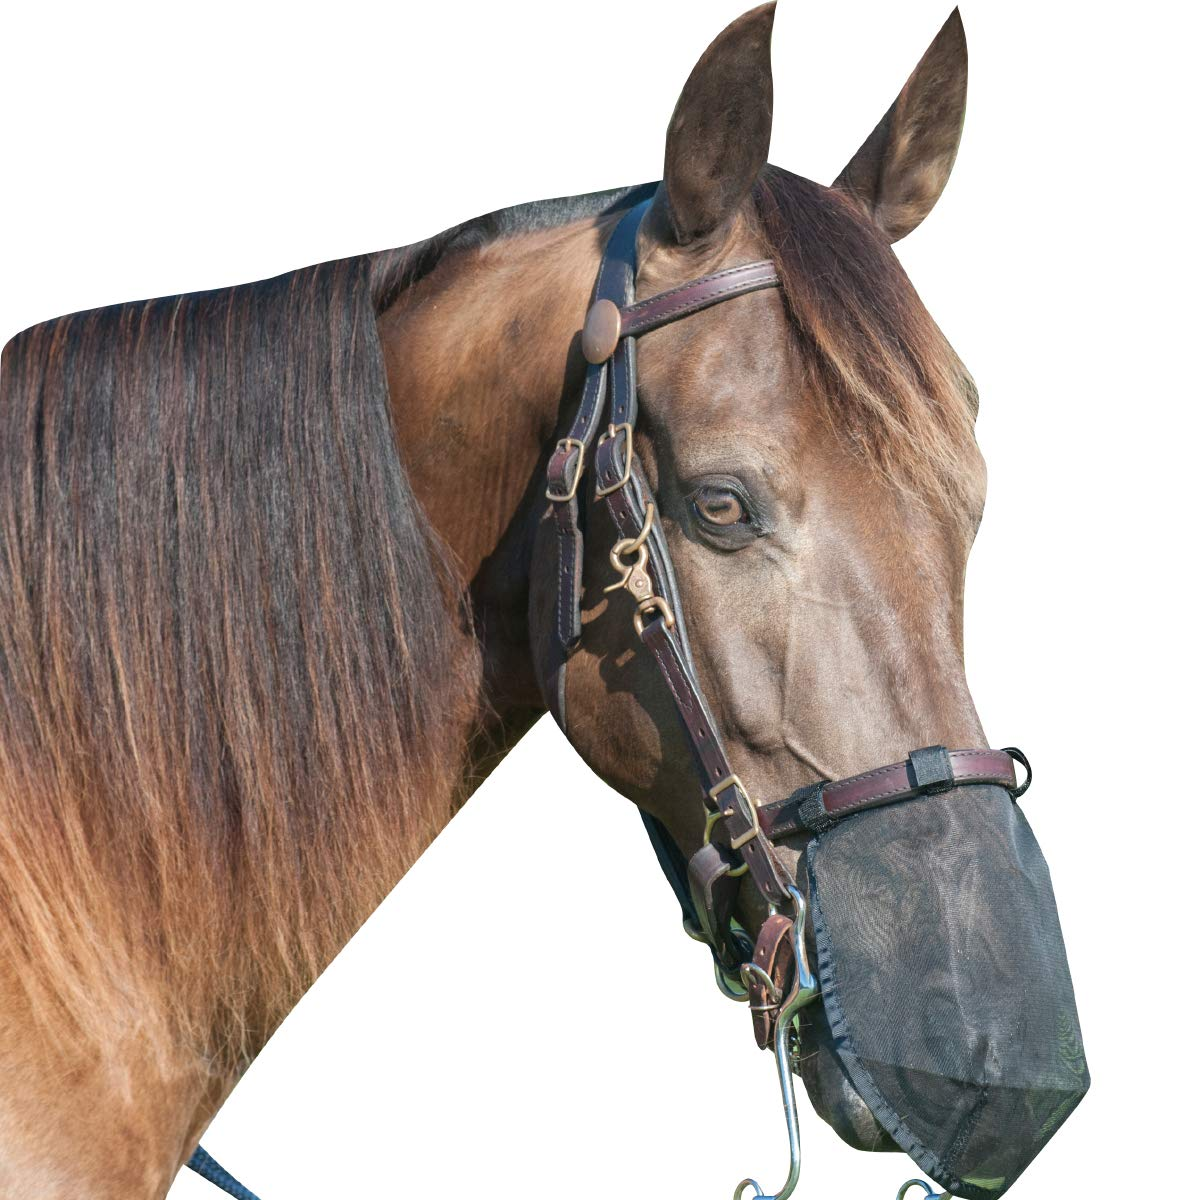 Cashel Quiet Ride Fly Mask, Nose Net, Medium by Cashel